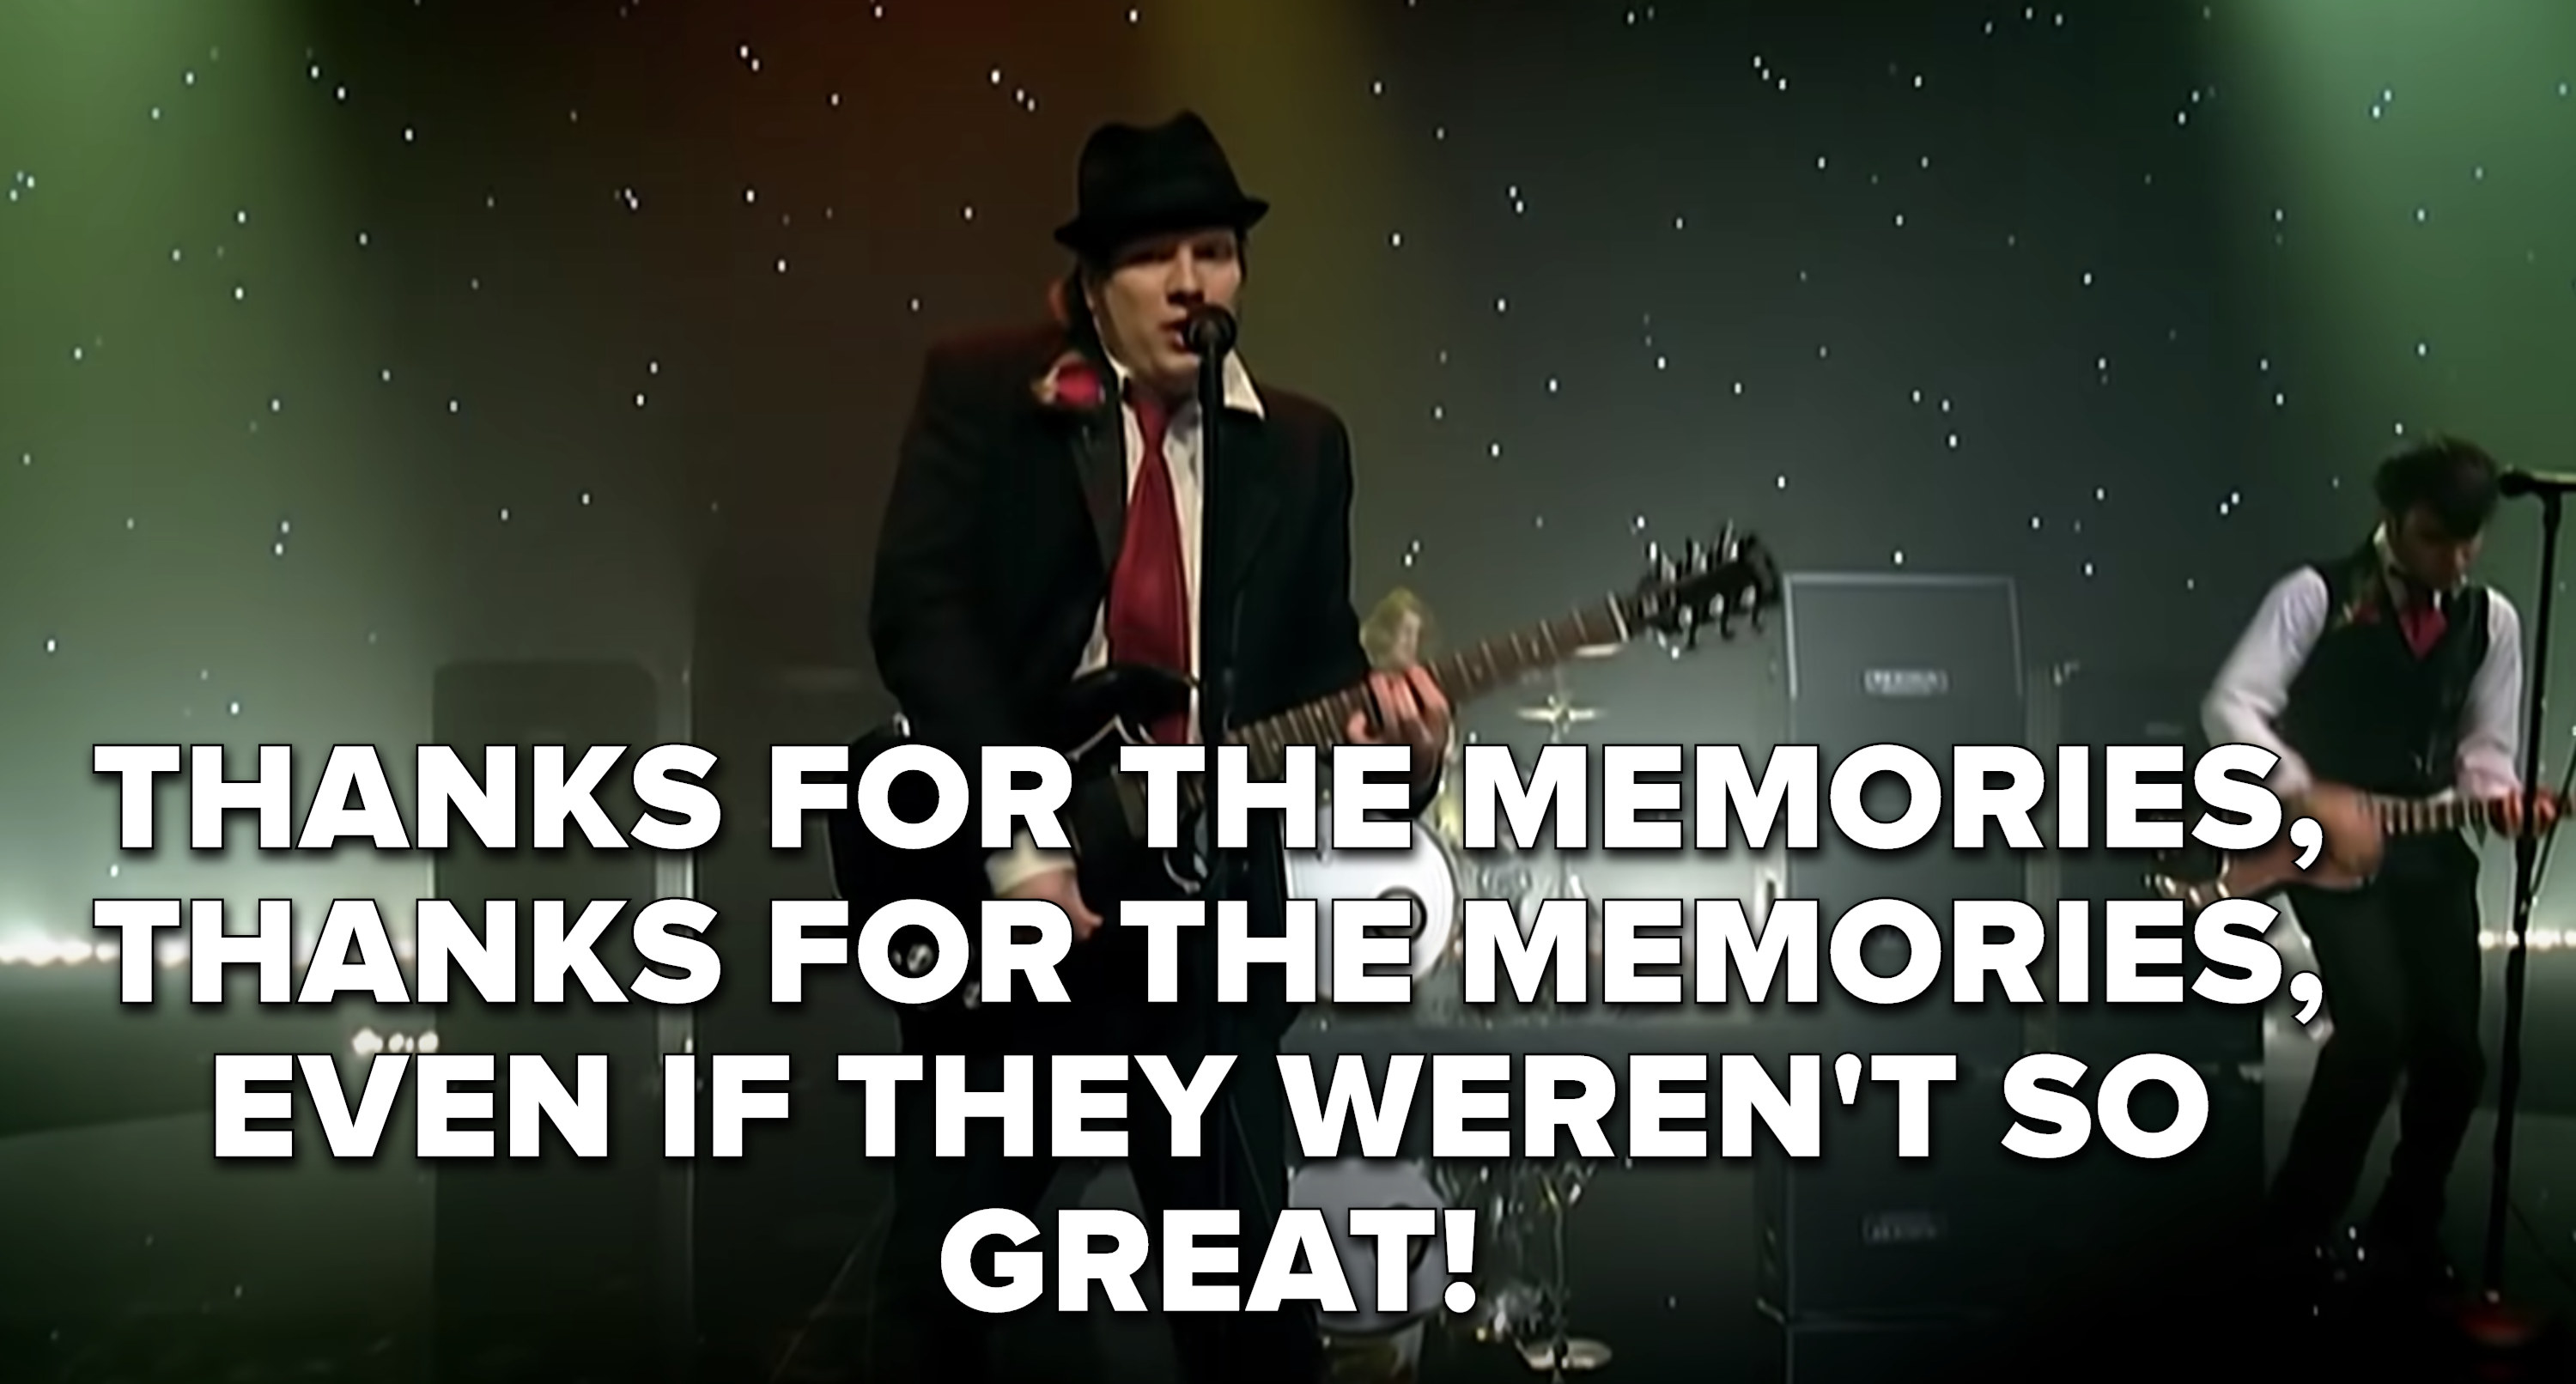 """Thanks for the memories, thanks for the memories, even if they weren't so great"""